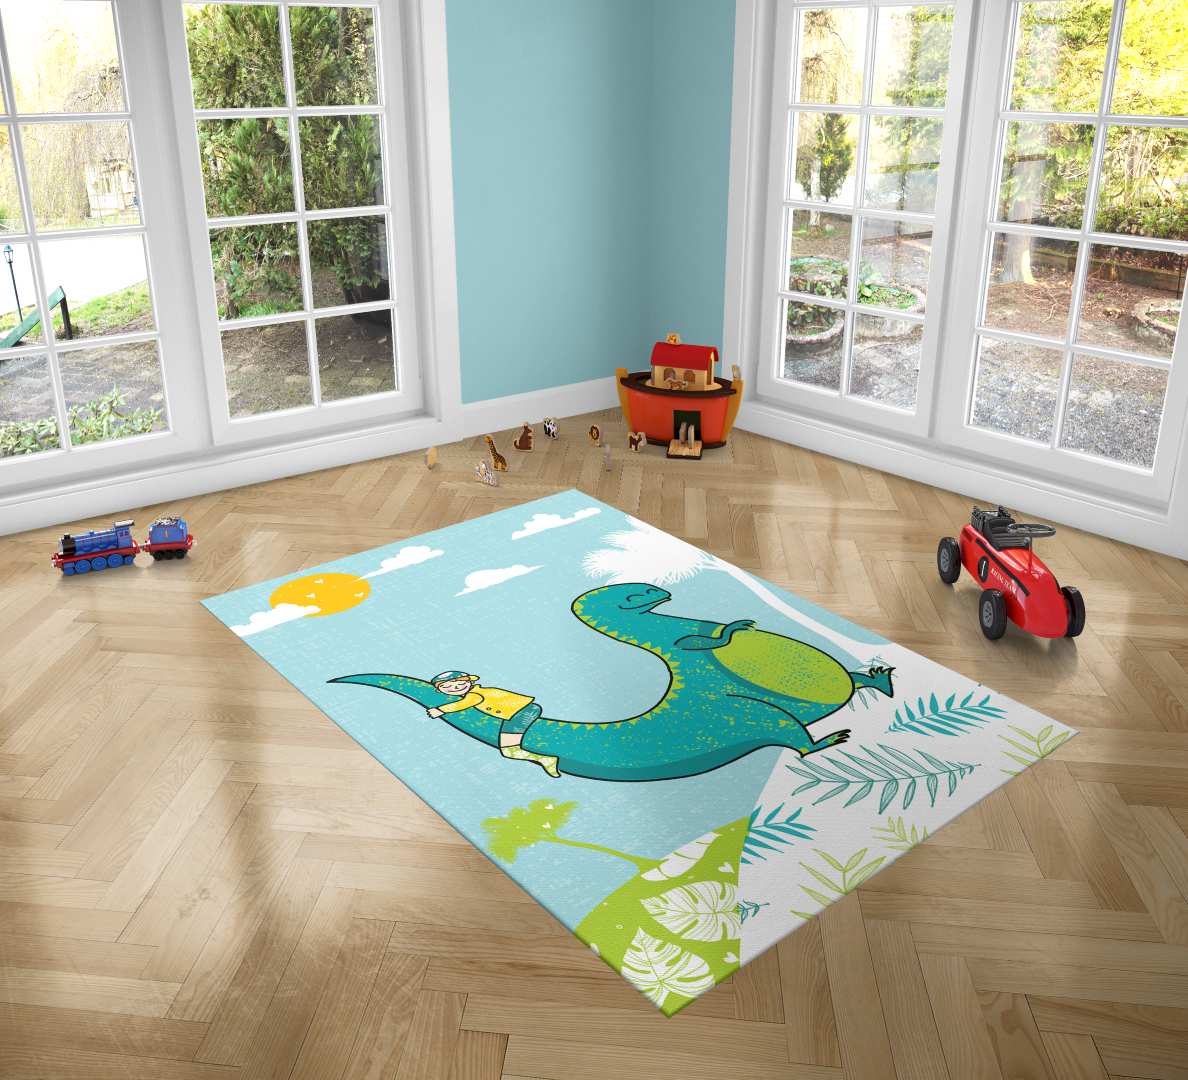 Dinosaur Love Pvc Carpet Print Kids Room Decor Boys Carpets Nursery Art Gift For Ilration